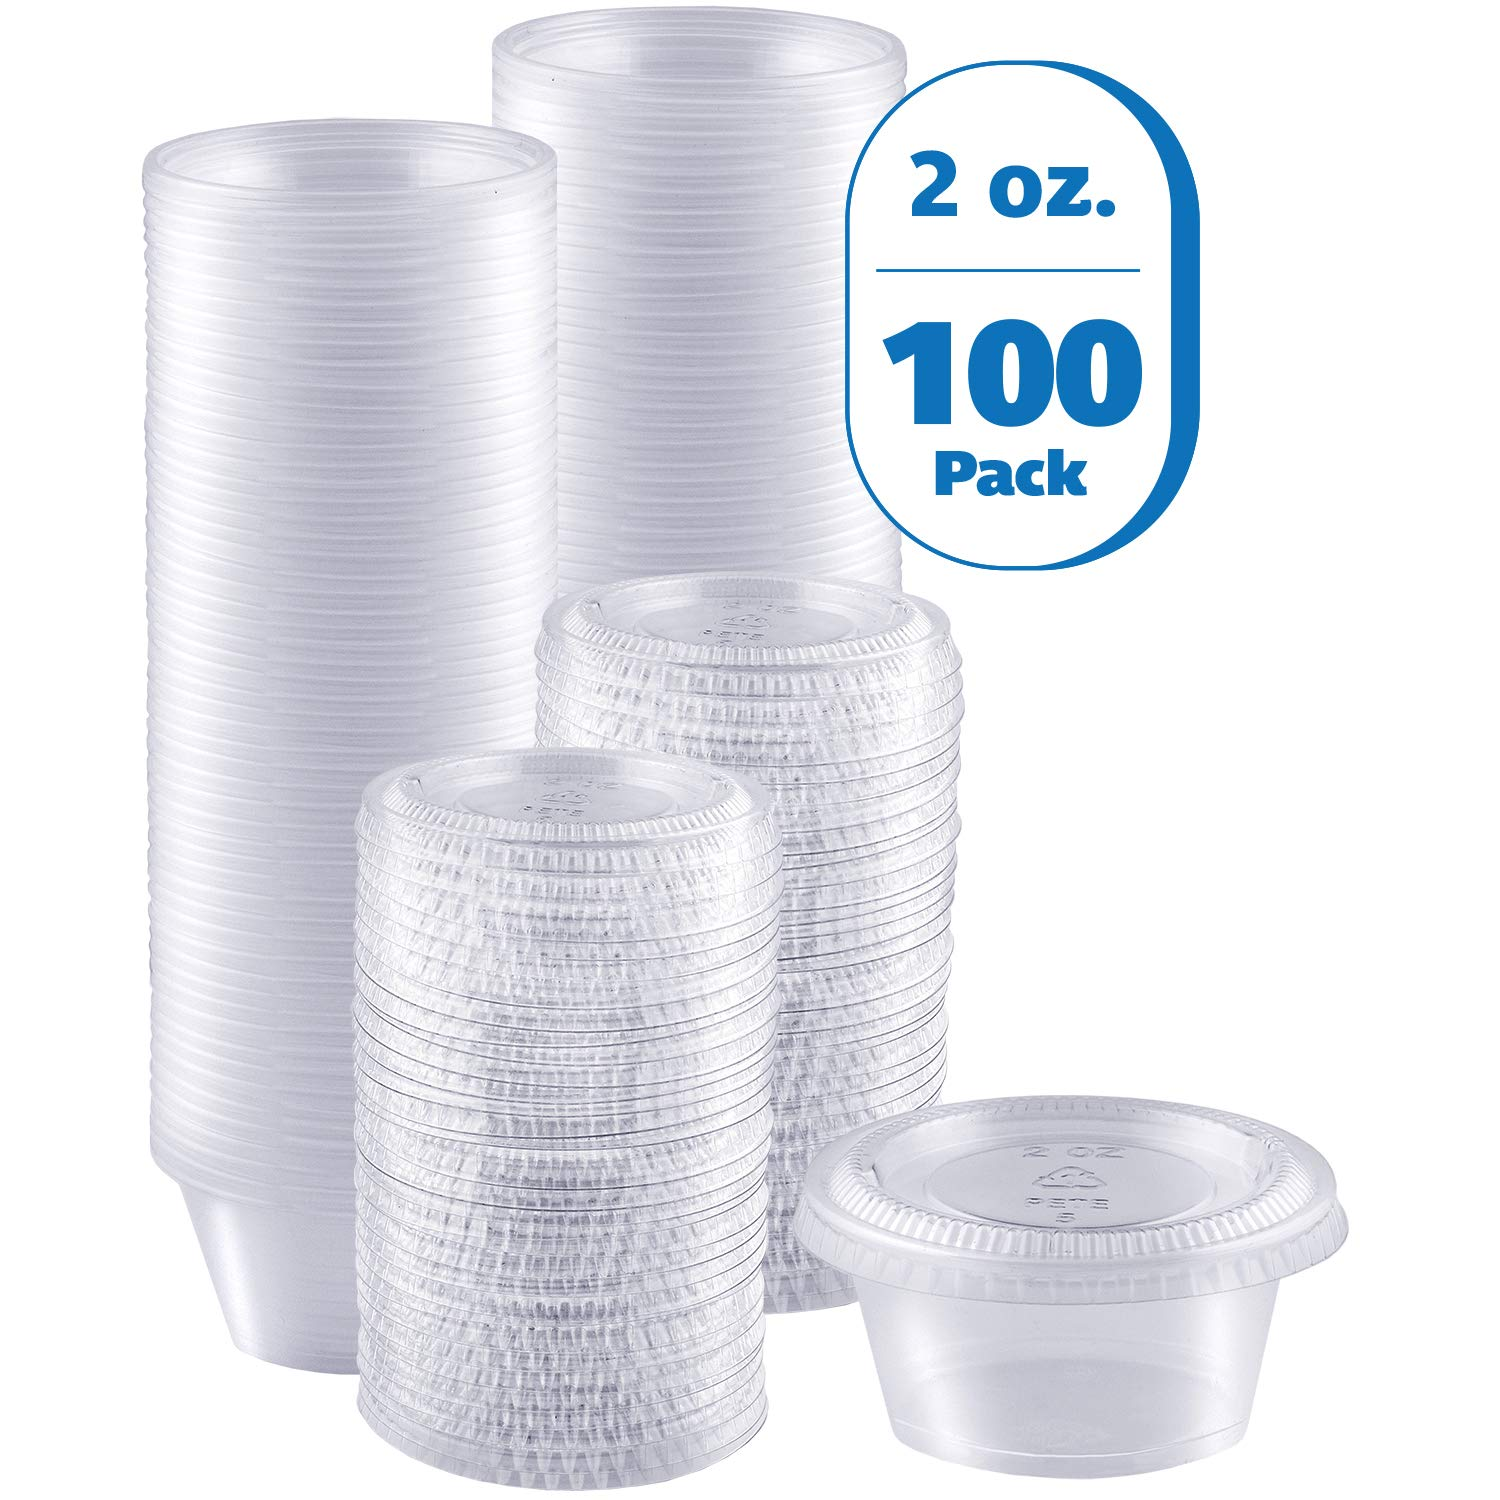 Zeml Portion Cups with Lids (2 Ounces, 100 Pack) | Disposable Plastic Cups for Meal Prep, Portion Control, Salad Dressing, Jello Shots, Slime & Medicine | Premium Small Plastic Condiment Container